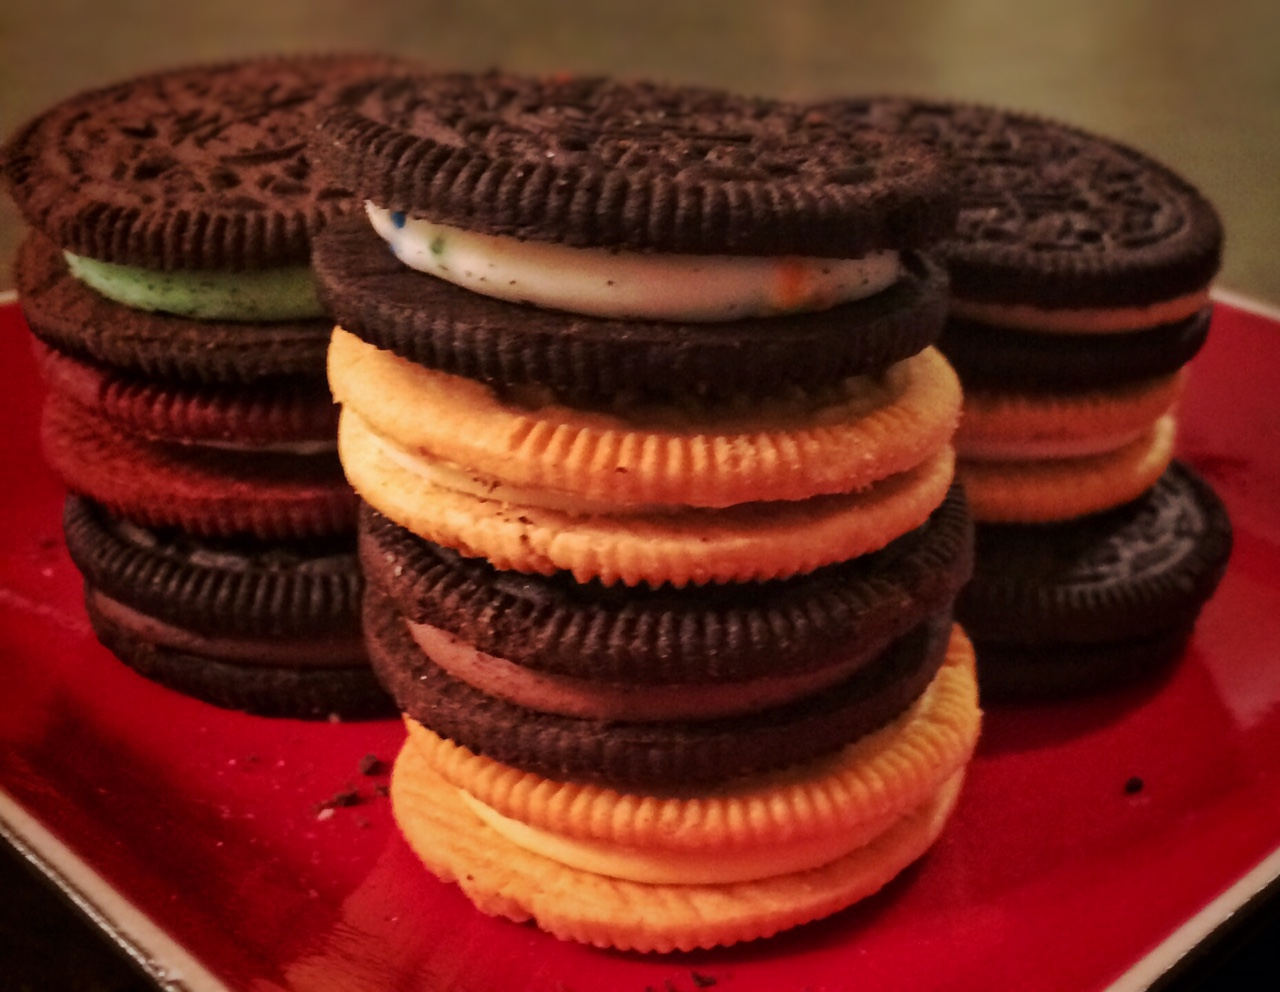 These amazing Oreo flavor hacks will revolutionize your snack life